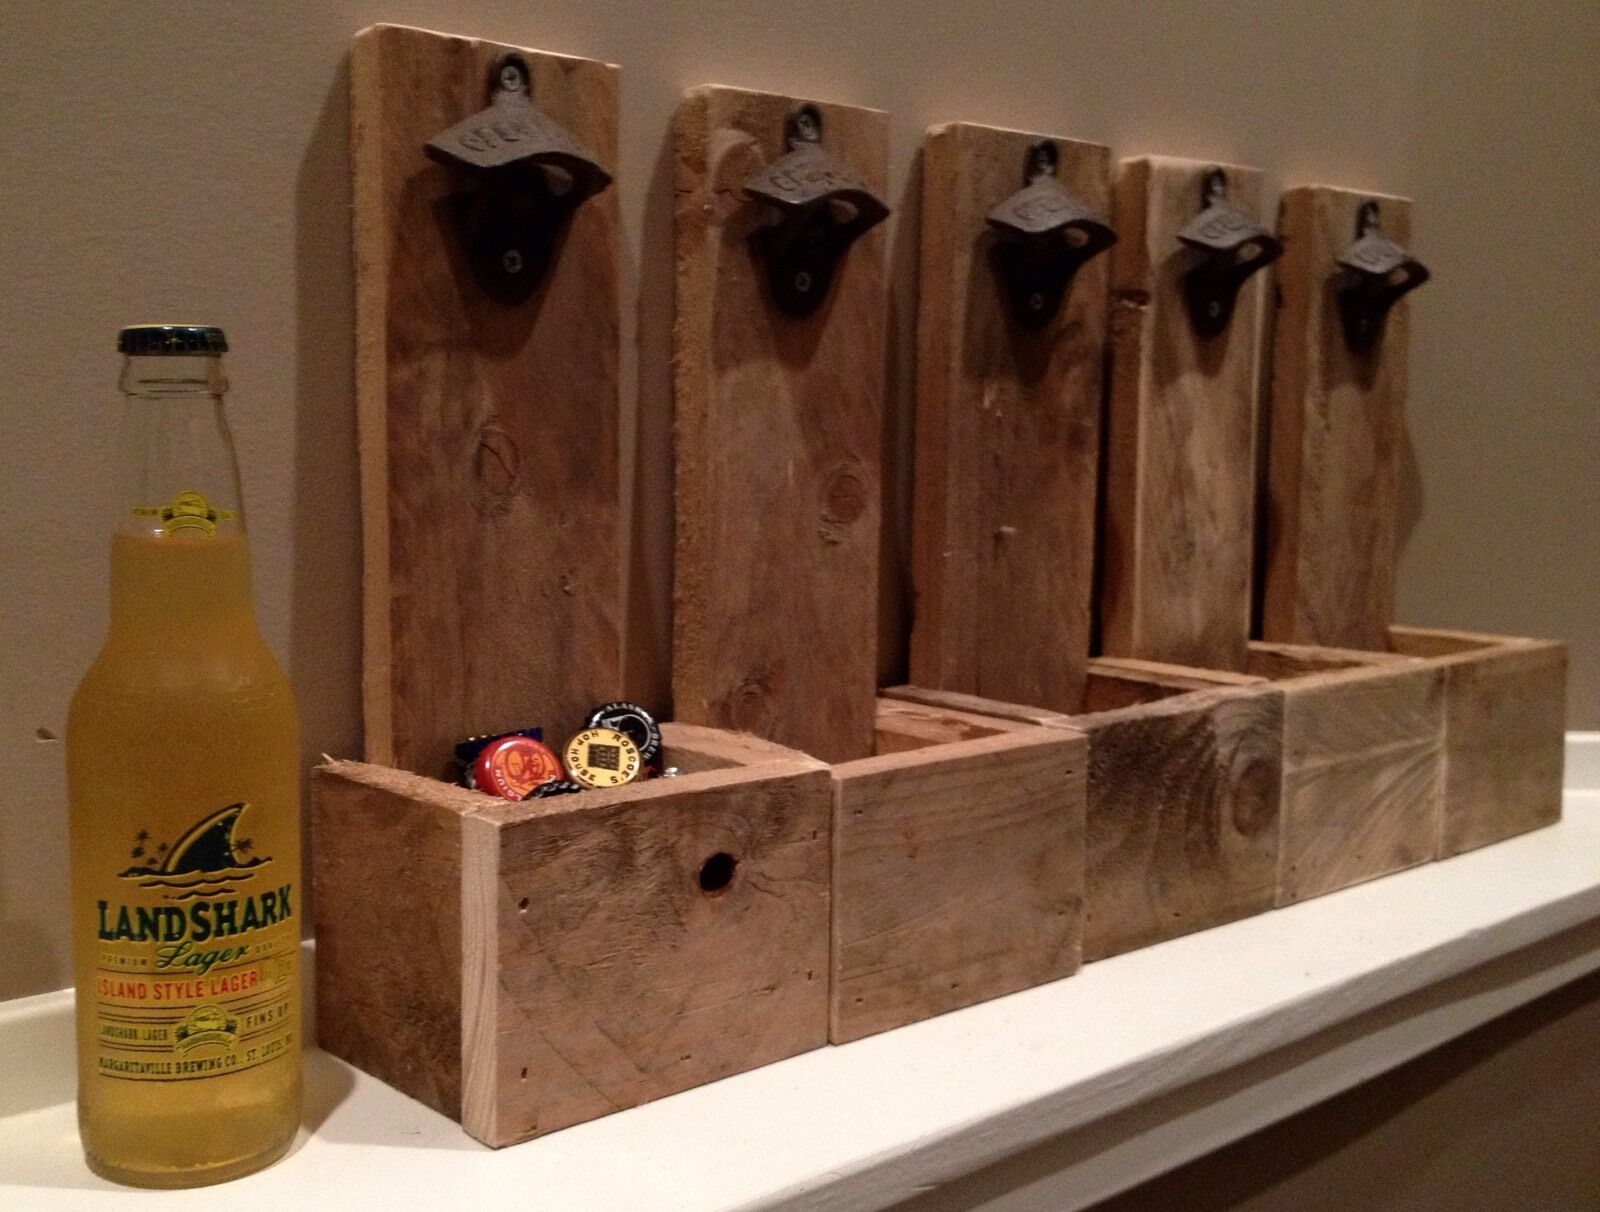 Wall Mounted Beer Bottle Opener with Cap Catcher - Groosmen Gift, Reclaimed Wood